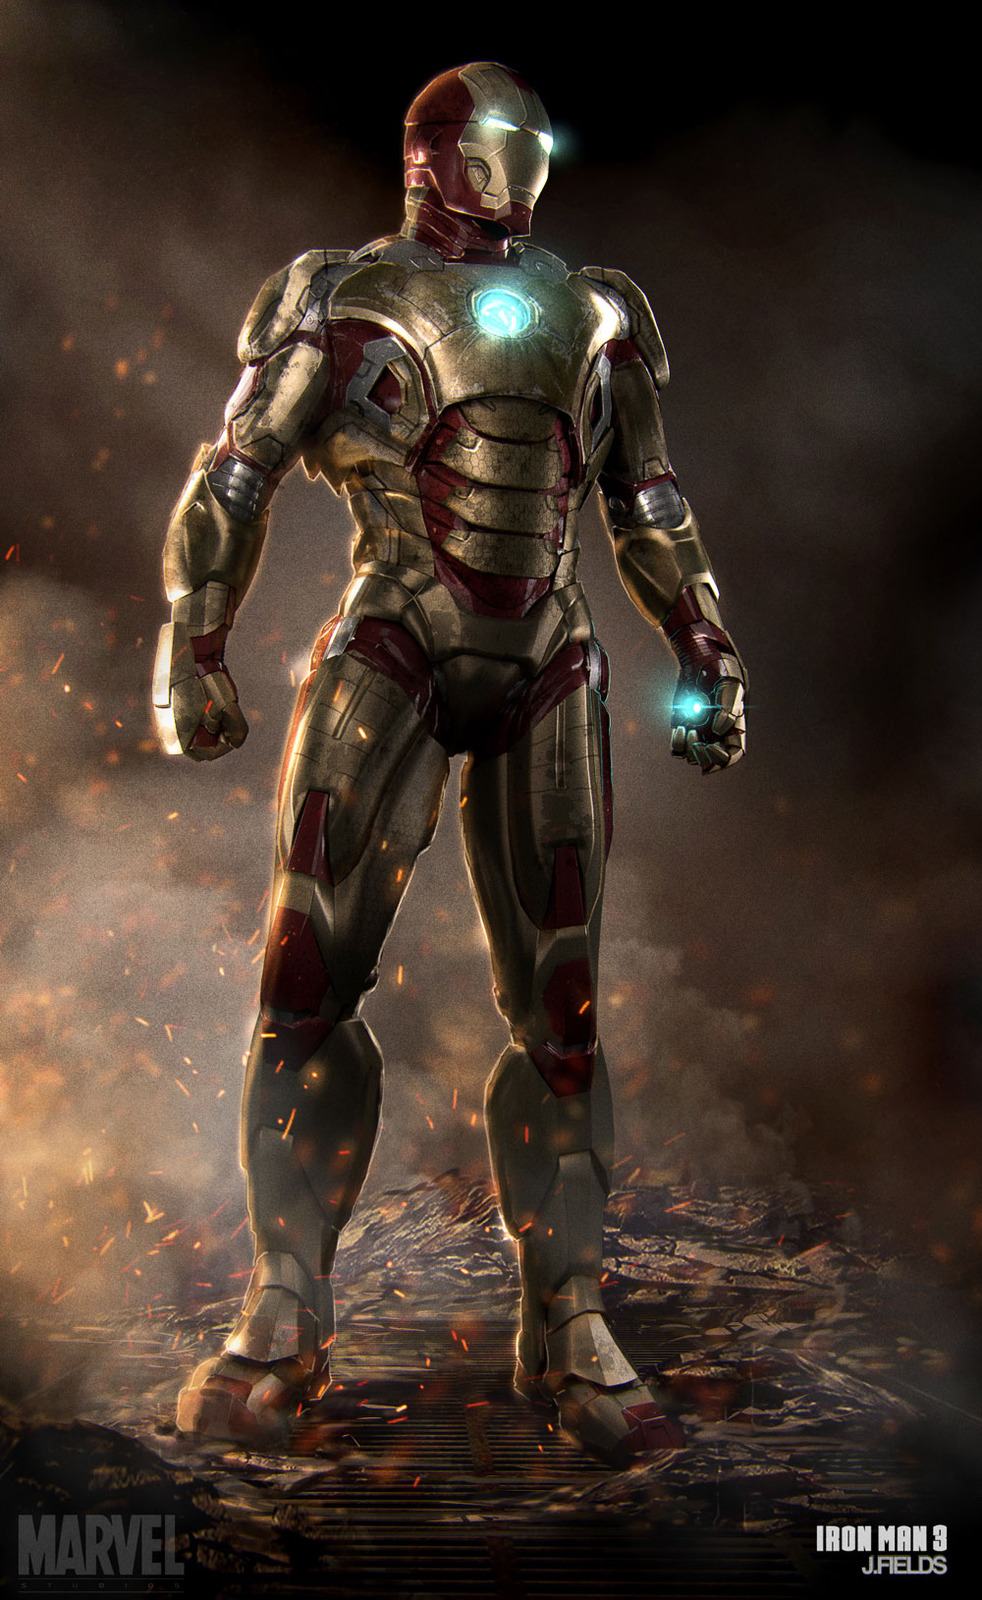 Iron Man 3 Mark 42 - Digital Art - Fribly